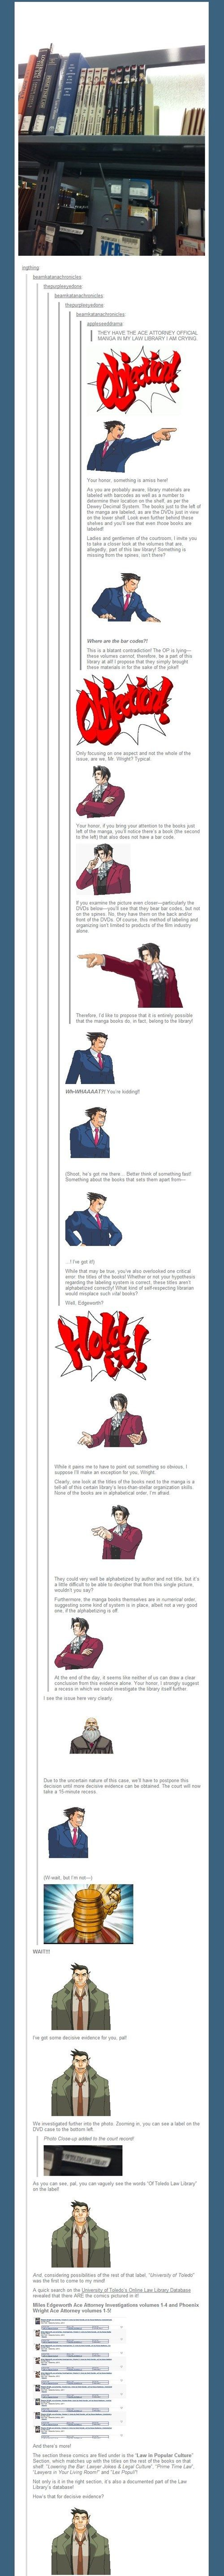 OH MY GOSH, I HAVE NEVER LOVED A TUMBLR THREAD IN MY LIFE MORE THAN I LOVE THIS ONE.